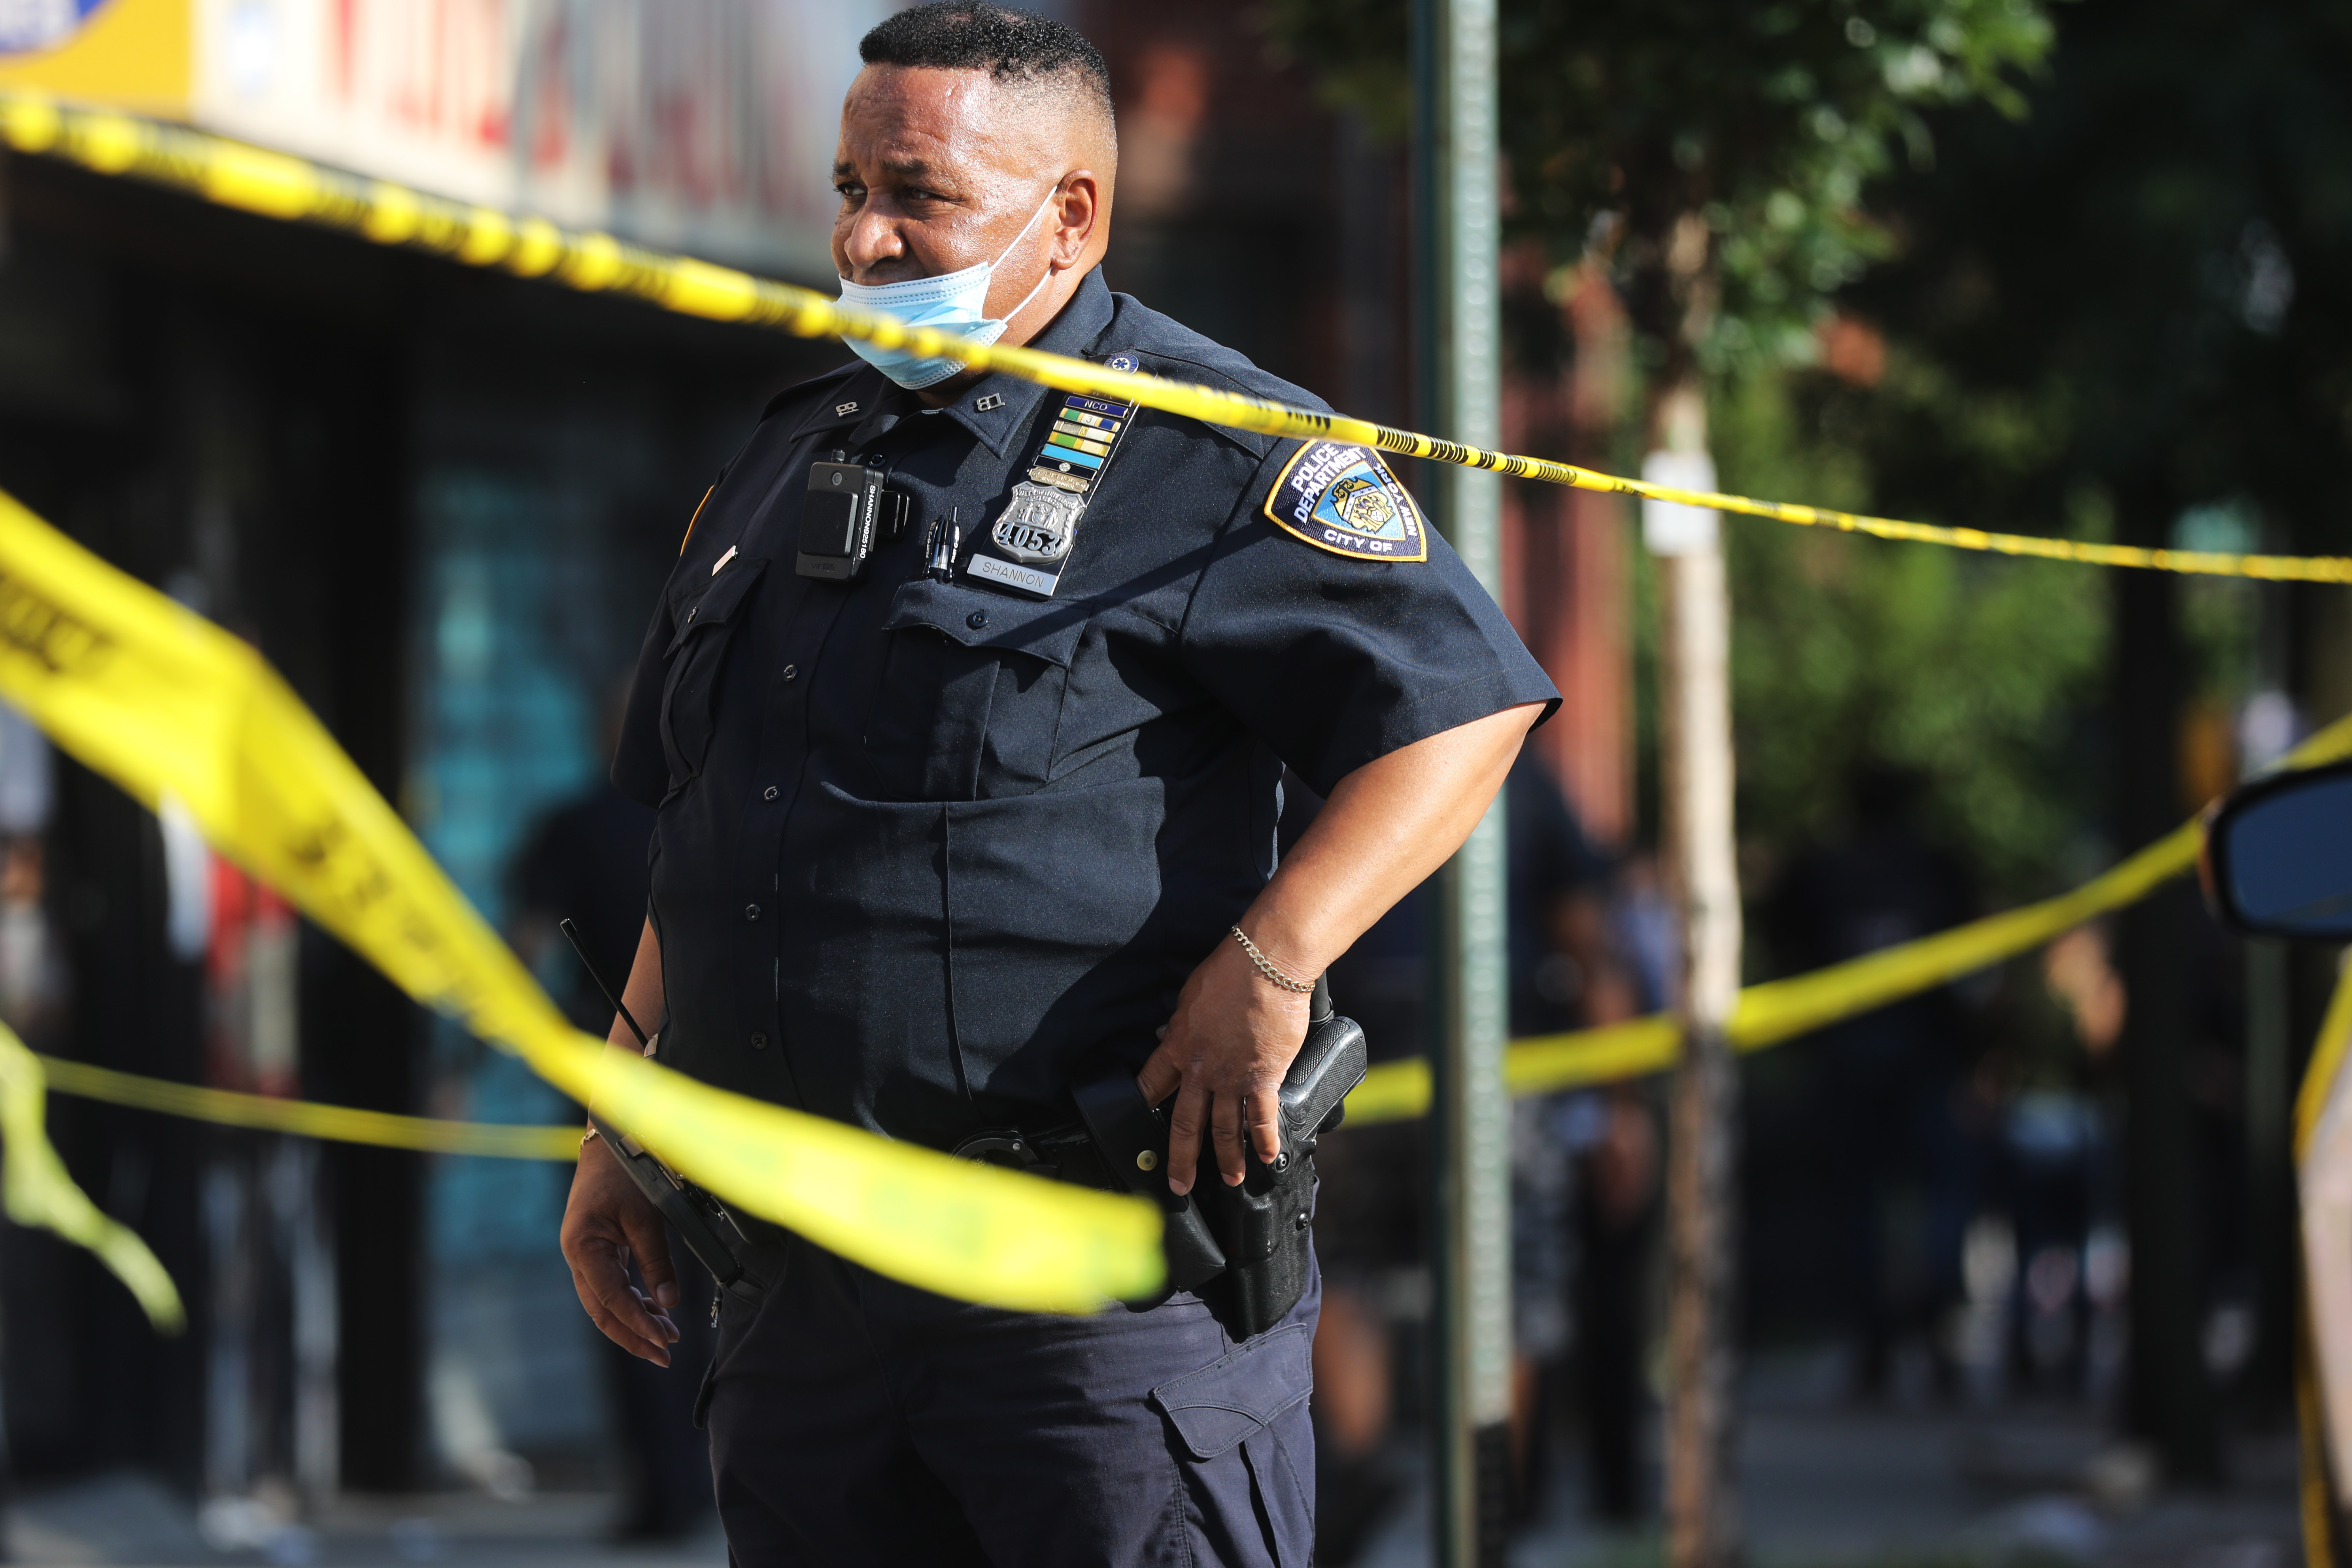 Police stand at the scene of a shooting which happened as Save Our Streets (S.O.S.) was holding a peace march in response to a surge in shootings in the Bedford Stuyvesant neighborhood in Brooklyn on July 16, 2020 in New York City. The march and shooting was held near the scene in Brooklyn where a one-year-old child, Davell Gardner Jr., was recently shot and killed. Davell was shot near a playground during a Sunday picnic when gunfire erupted. Two other adults were wounded in the evening shooting. New York City has witnessed a surge in gun violence over the past month with 9 people killed, including children, and 41 others wounded on the Fourth of July weekend alone. The gun violence is occurring against the backdrop of a nationwide movement to consider defunding police departments. (Photo by Spencer Platt/Getty Images)